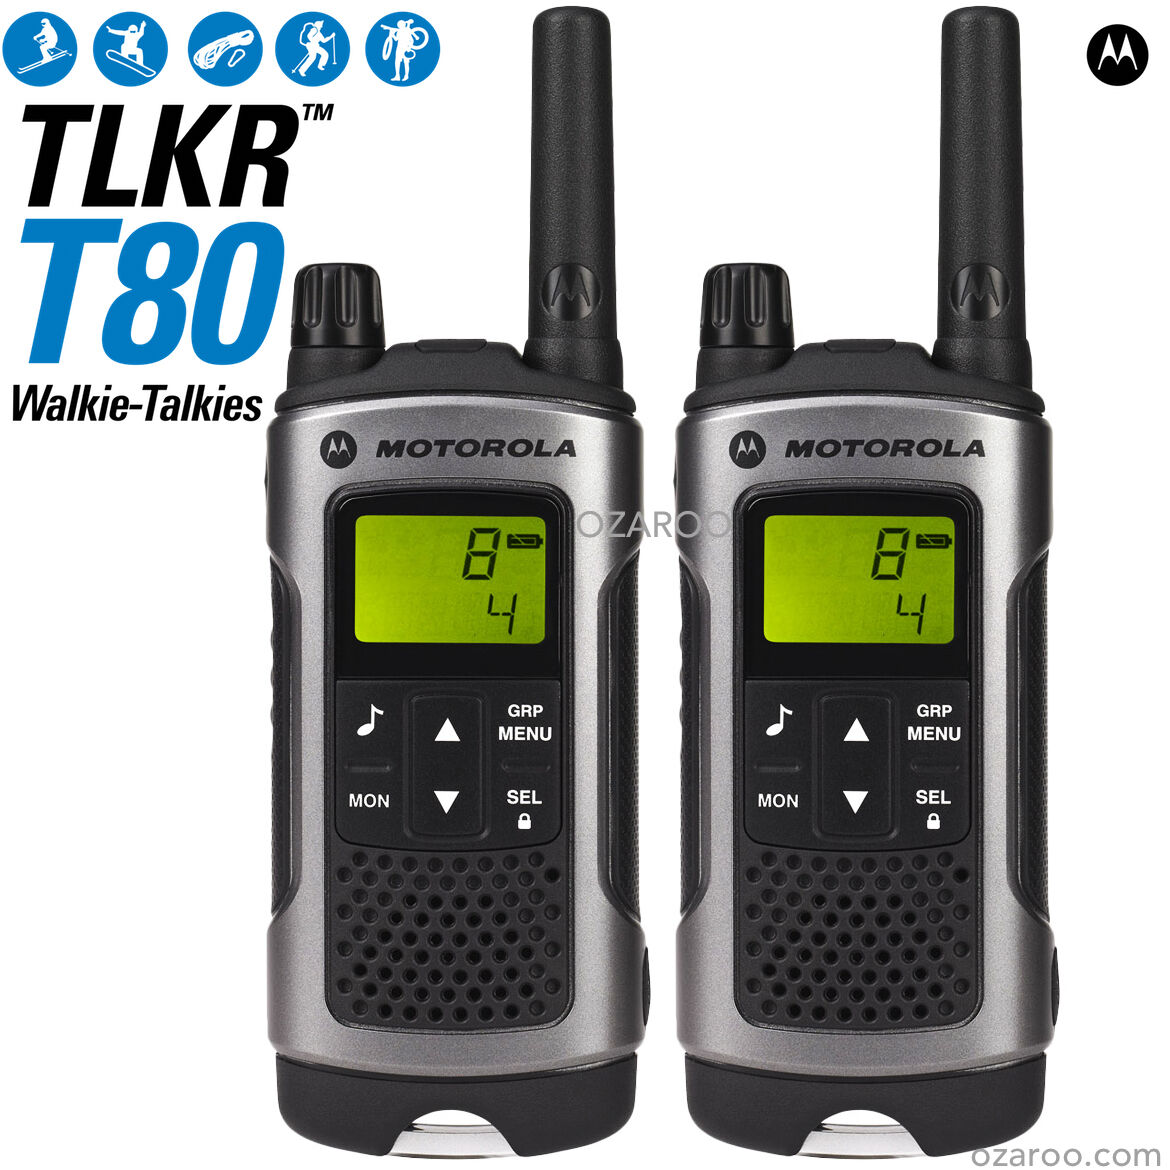 motorola talker tlkr t80 2 way walkie talkie pmr 446 radio 10km 2 pack silver eur 75 70. Black Bedroom Furniture Sets. Home Design Ideas